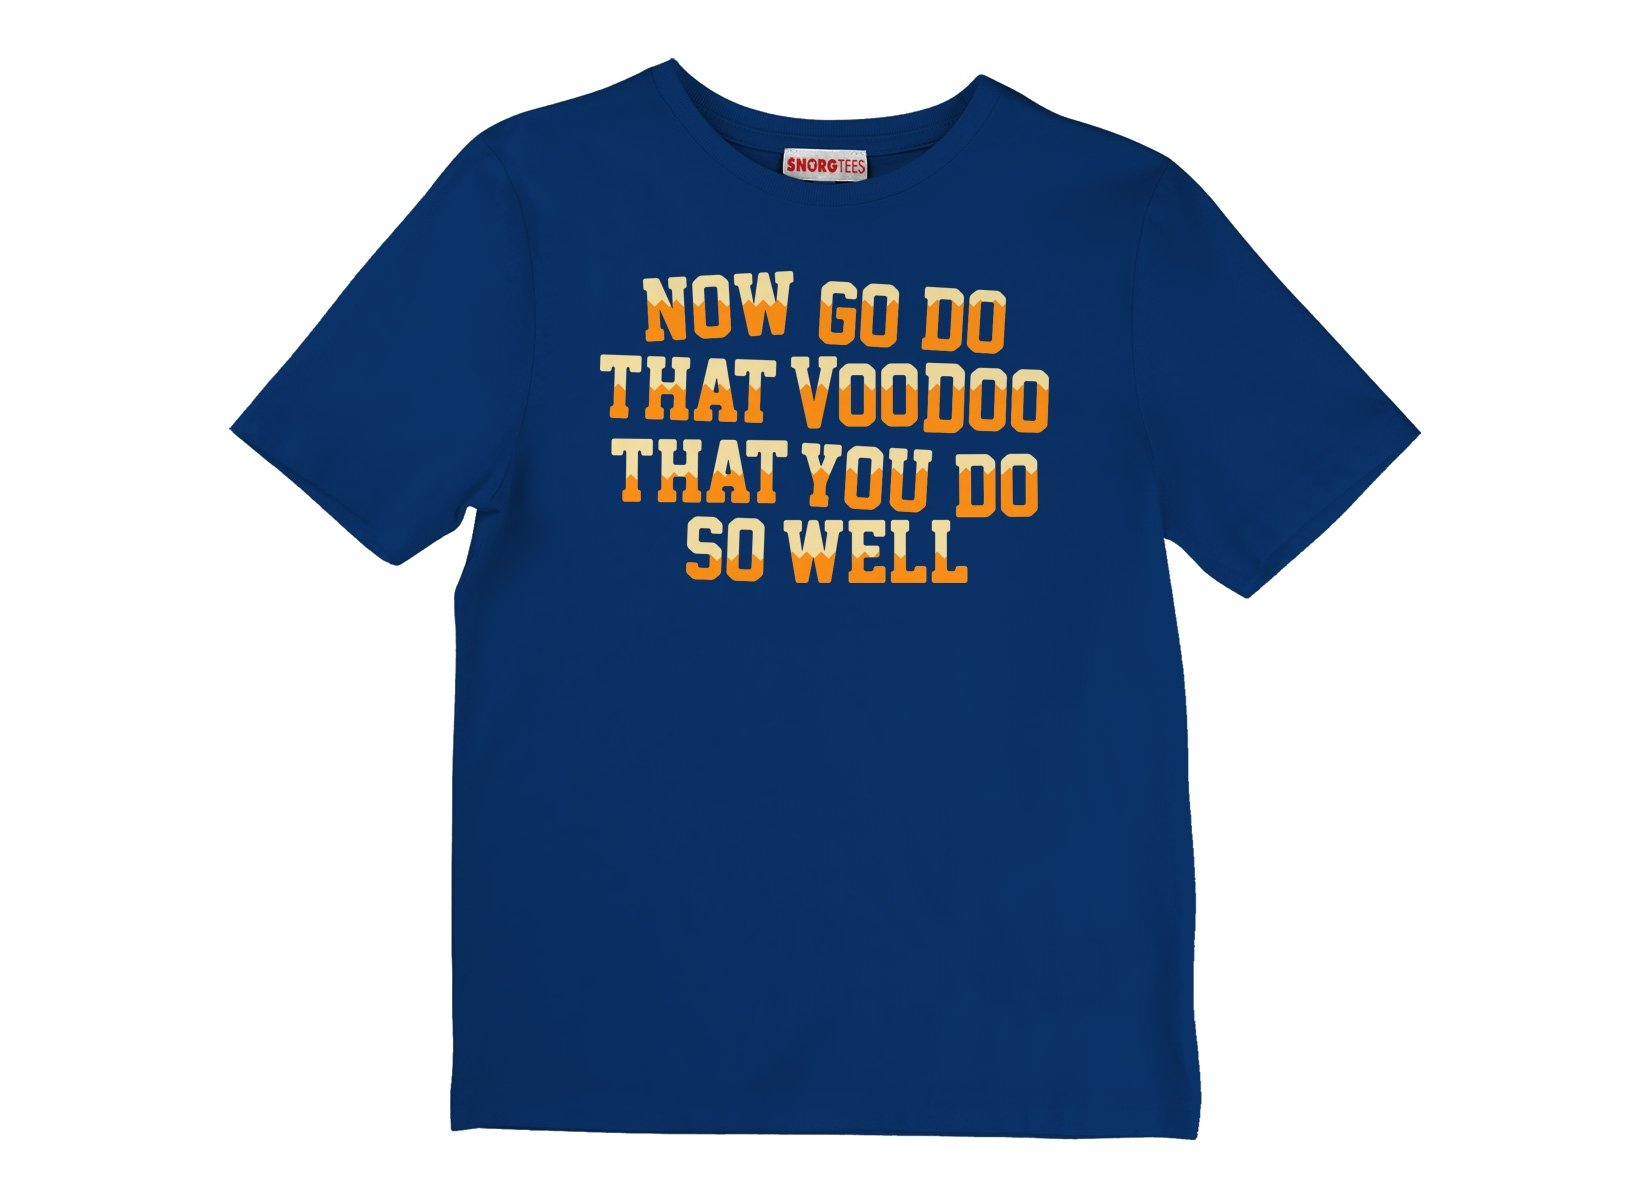 That Voodoo That You Do So Well on Kids T-Shirt